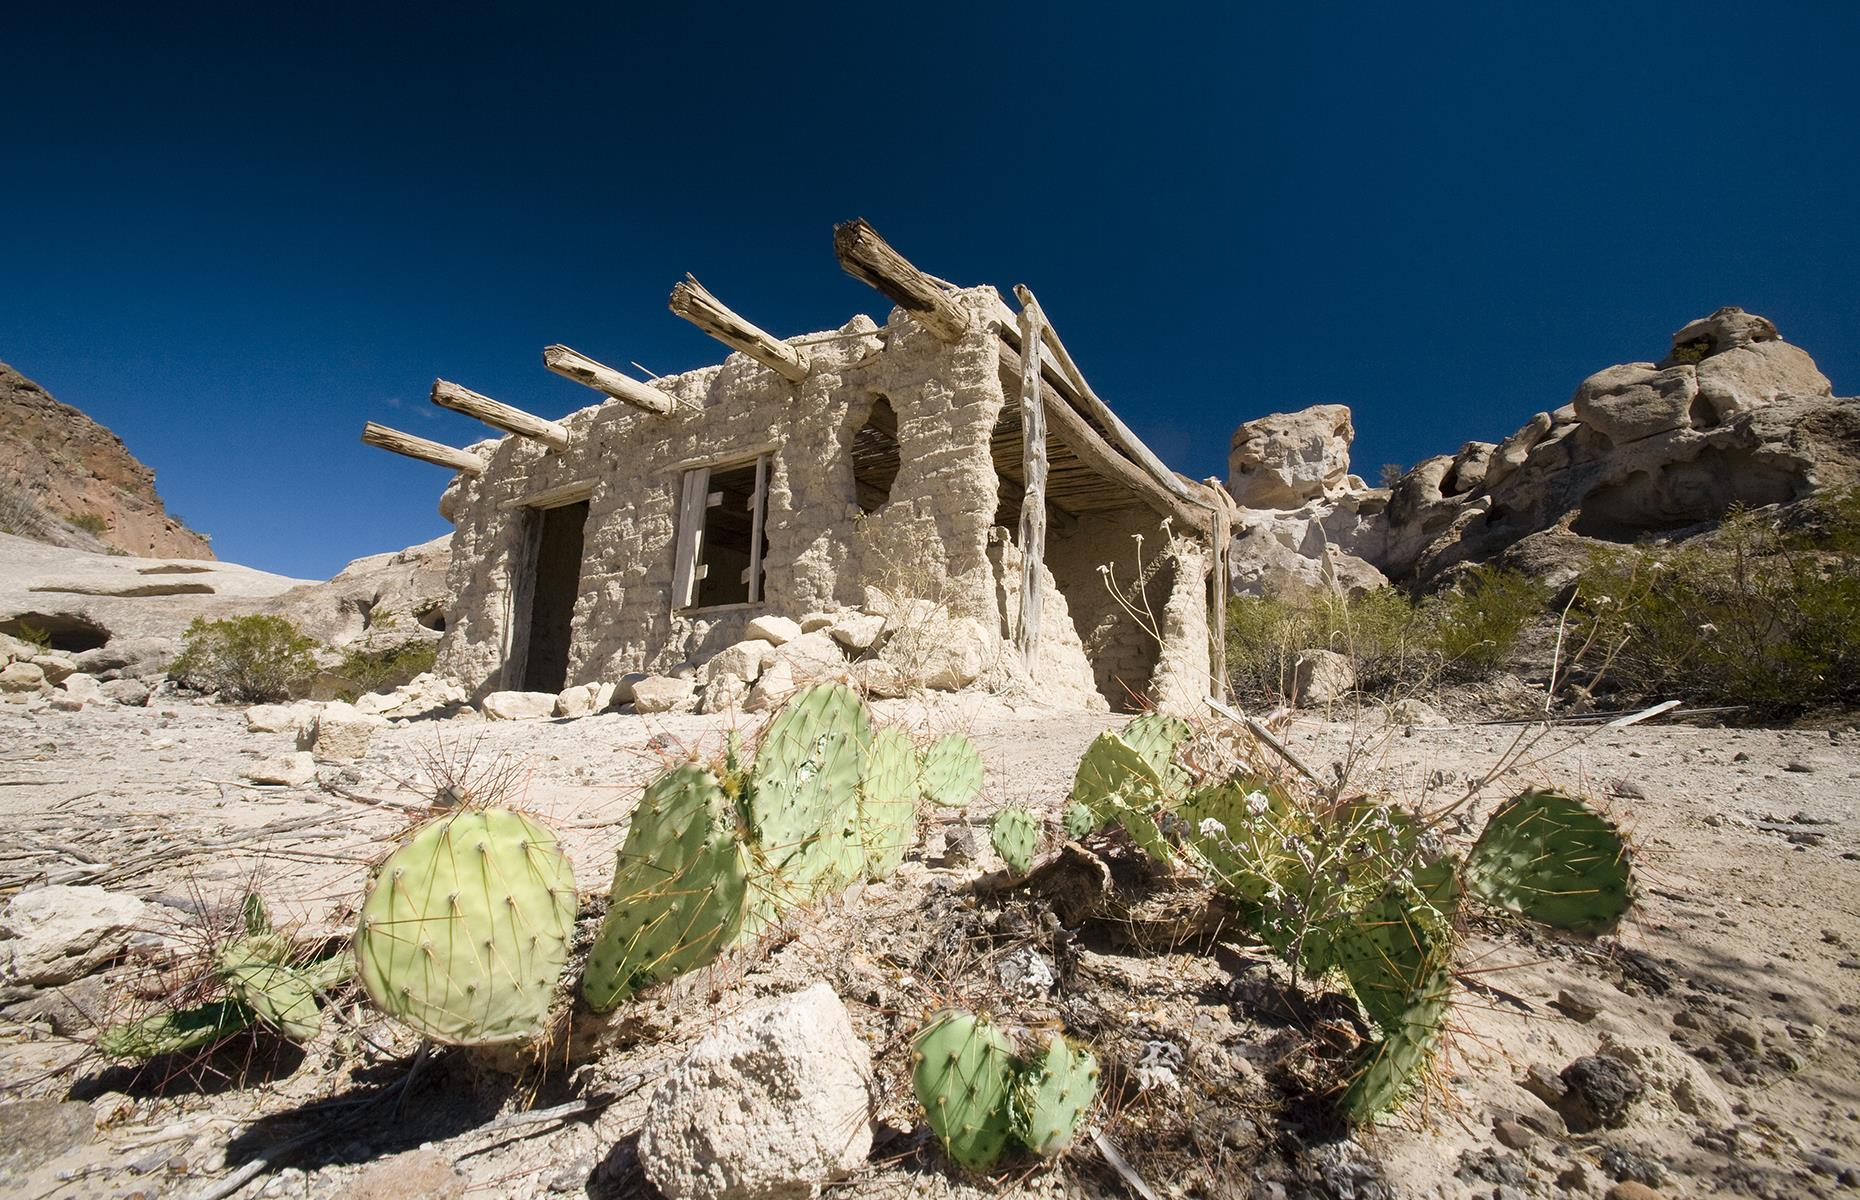 Slide 15 of 33: The residents of Terlingua realized its potential as an attraction on the way to Big Bend National Park. The town usually offers several dining spots, a souvenir shop and tours of the abandoned buildings.